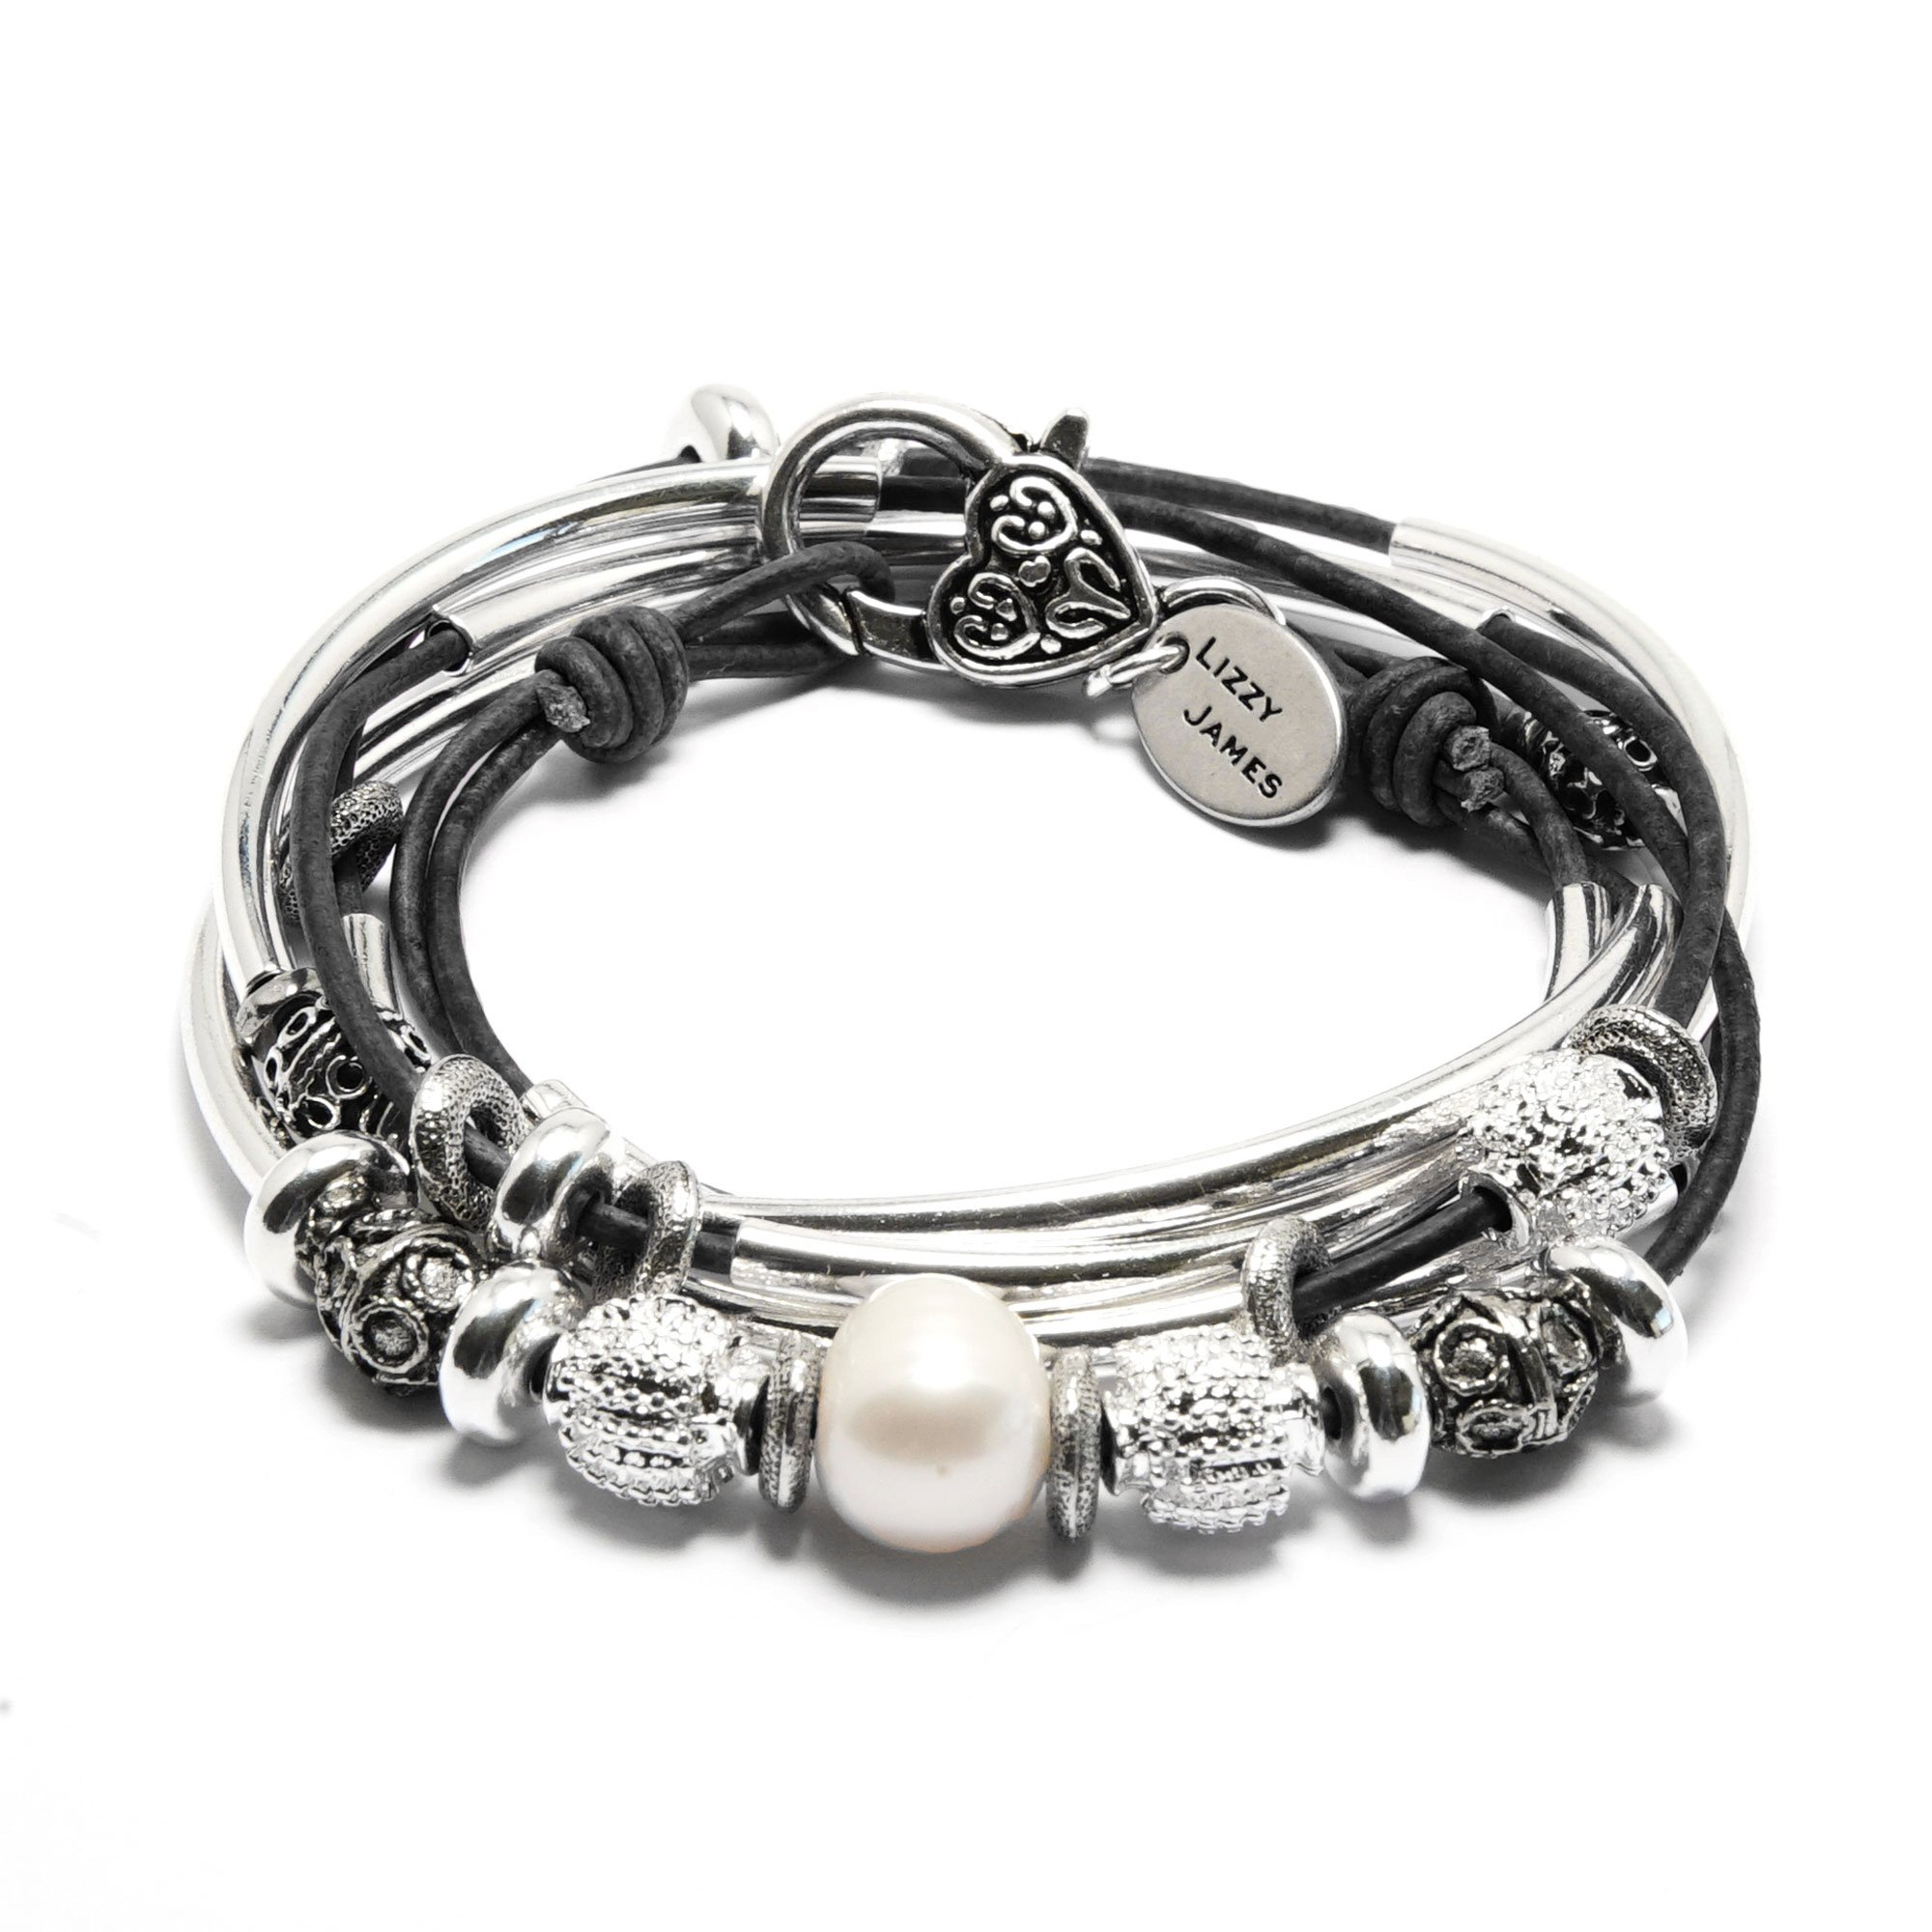 Lizzy James Kristy Silver Bracelet Necklace Pearls Silver Beads in Natural Black Leather (MEDIUM) by Lizzy James